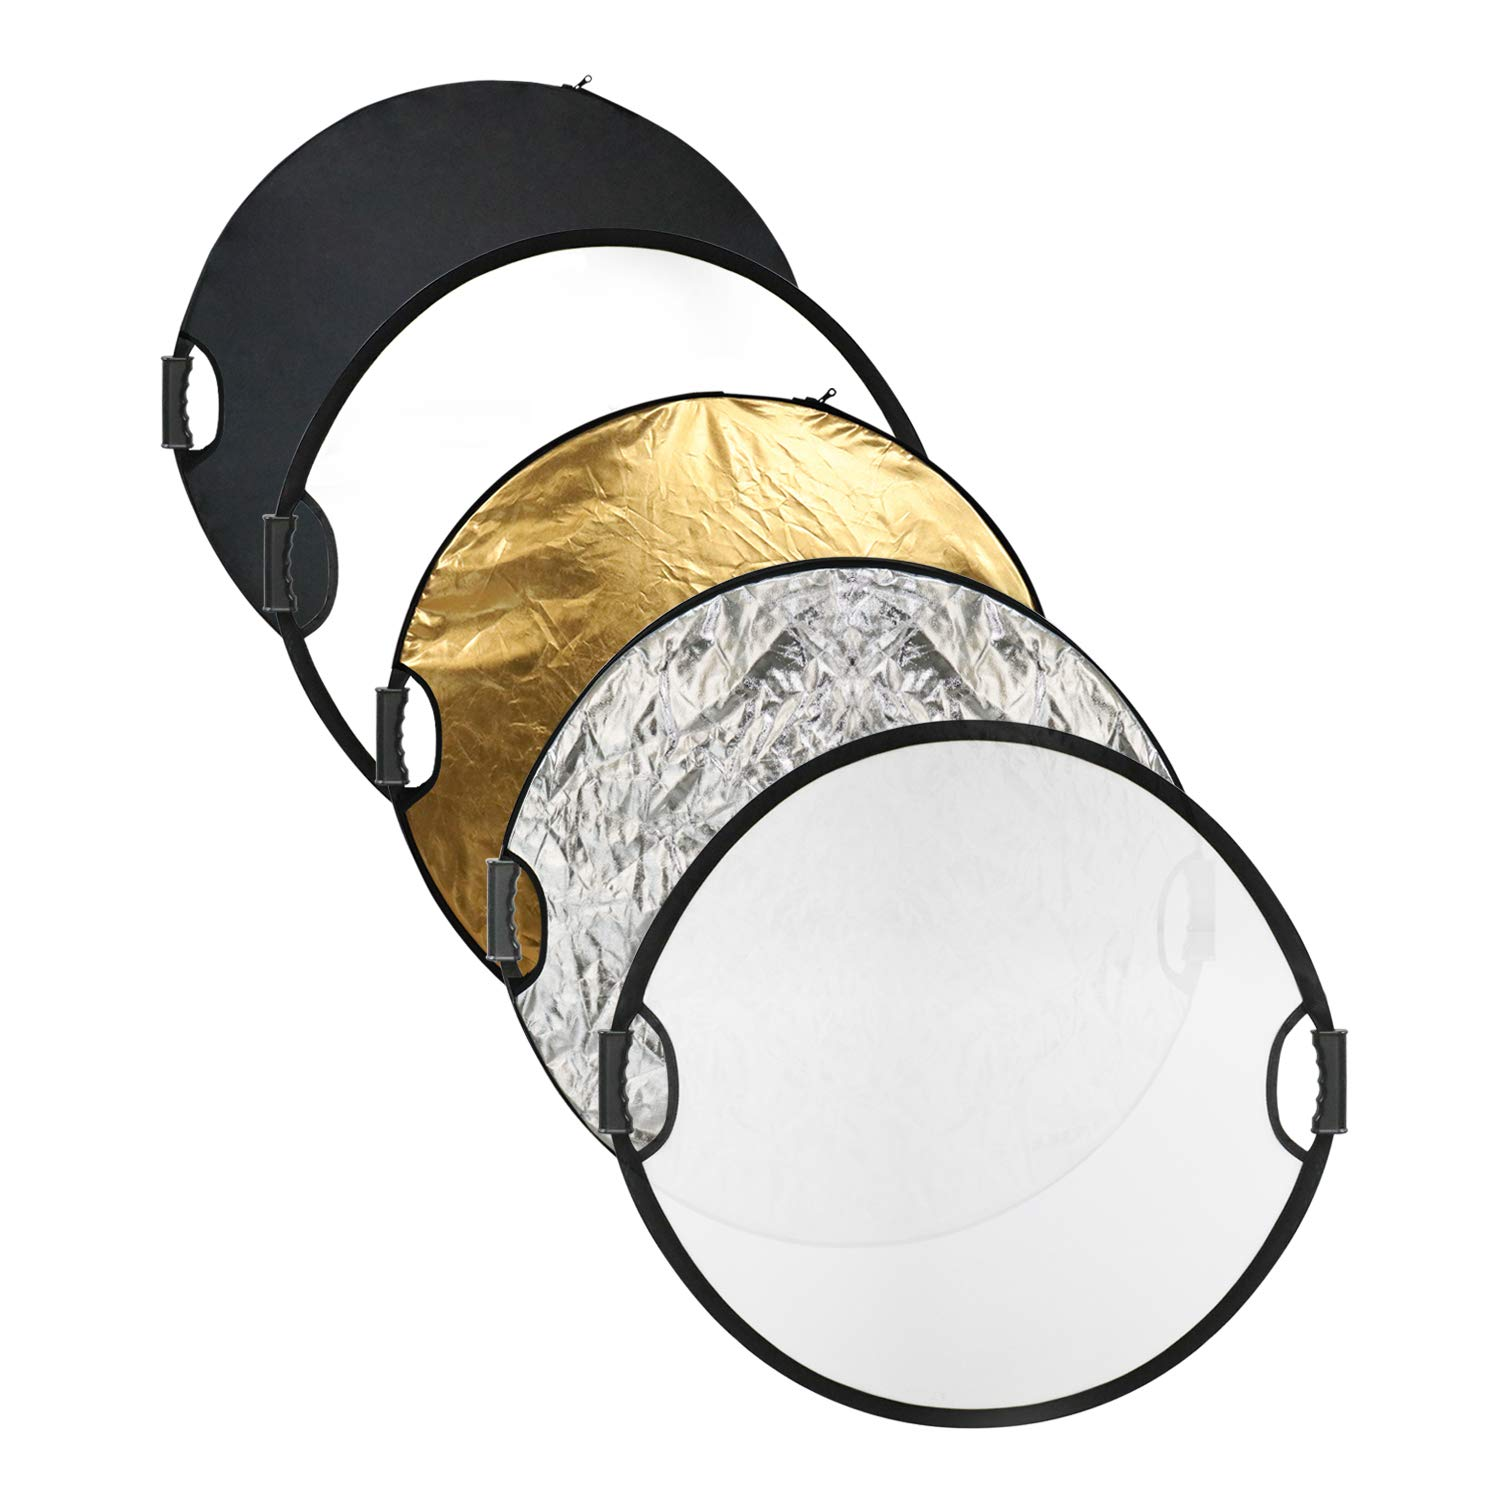 Issuntex 43''/110cm 5-in-1(Translucent, Silver, Gold, White and Black) Handle Collapsible Multi-Disc Photography Lighting Reflector with carring case. by ISSUNTEX